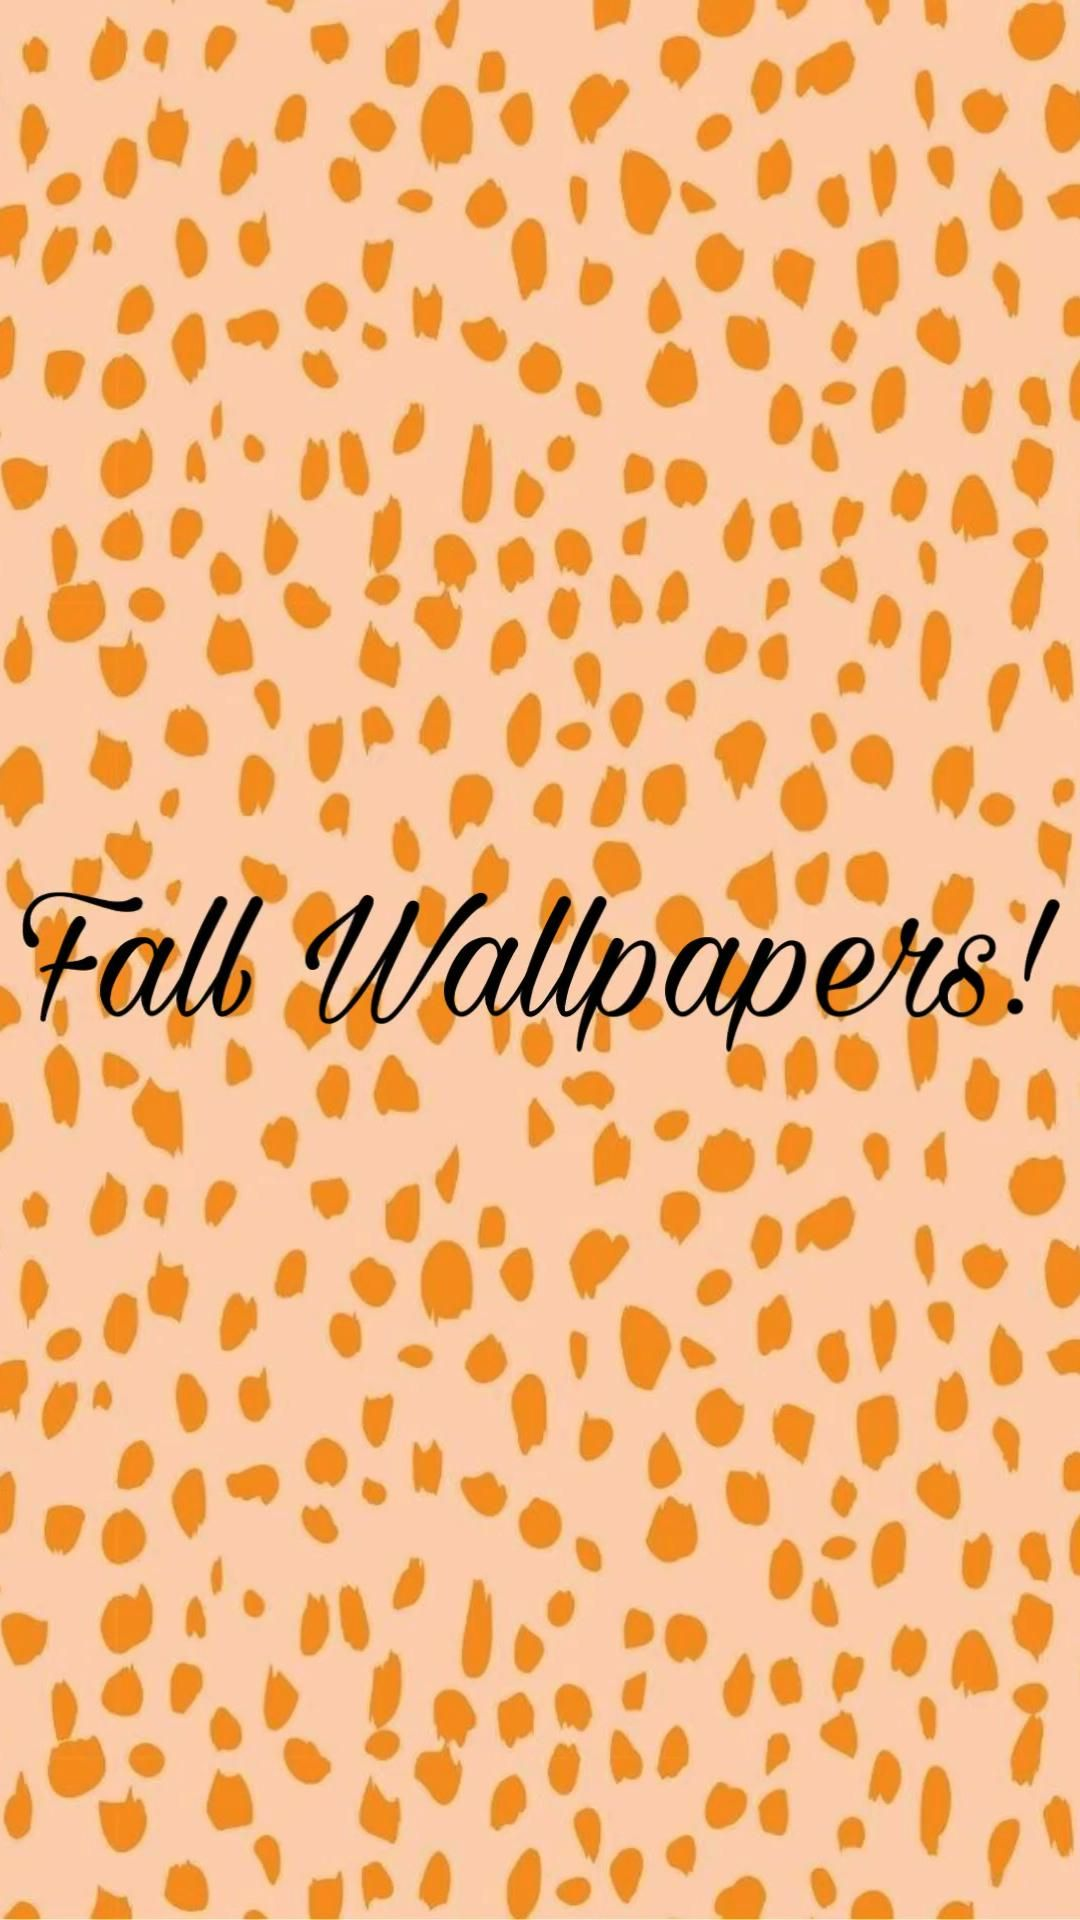 Fall themed wallpapers